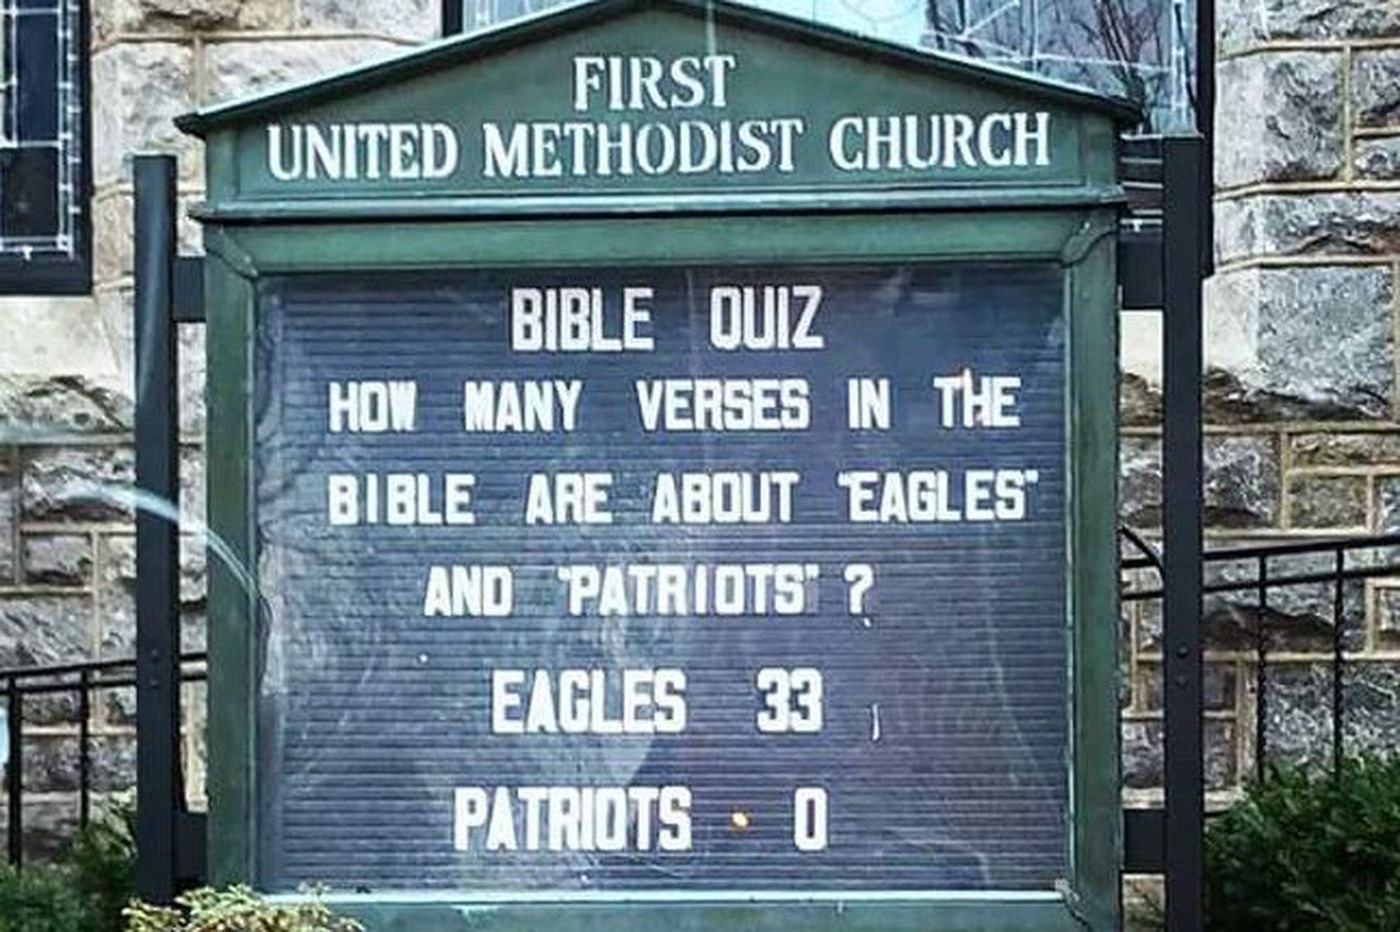 Does the Good Book have a good word for the Eagles?